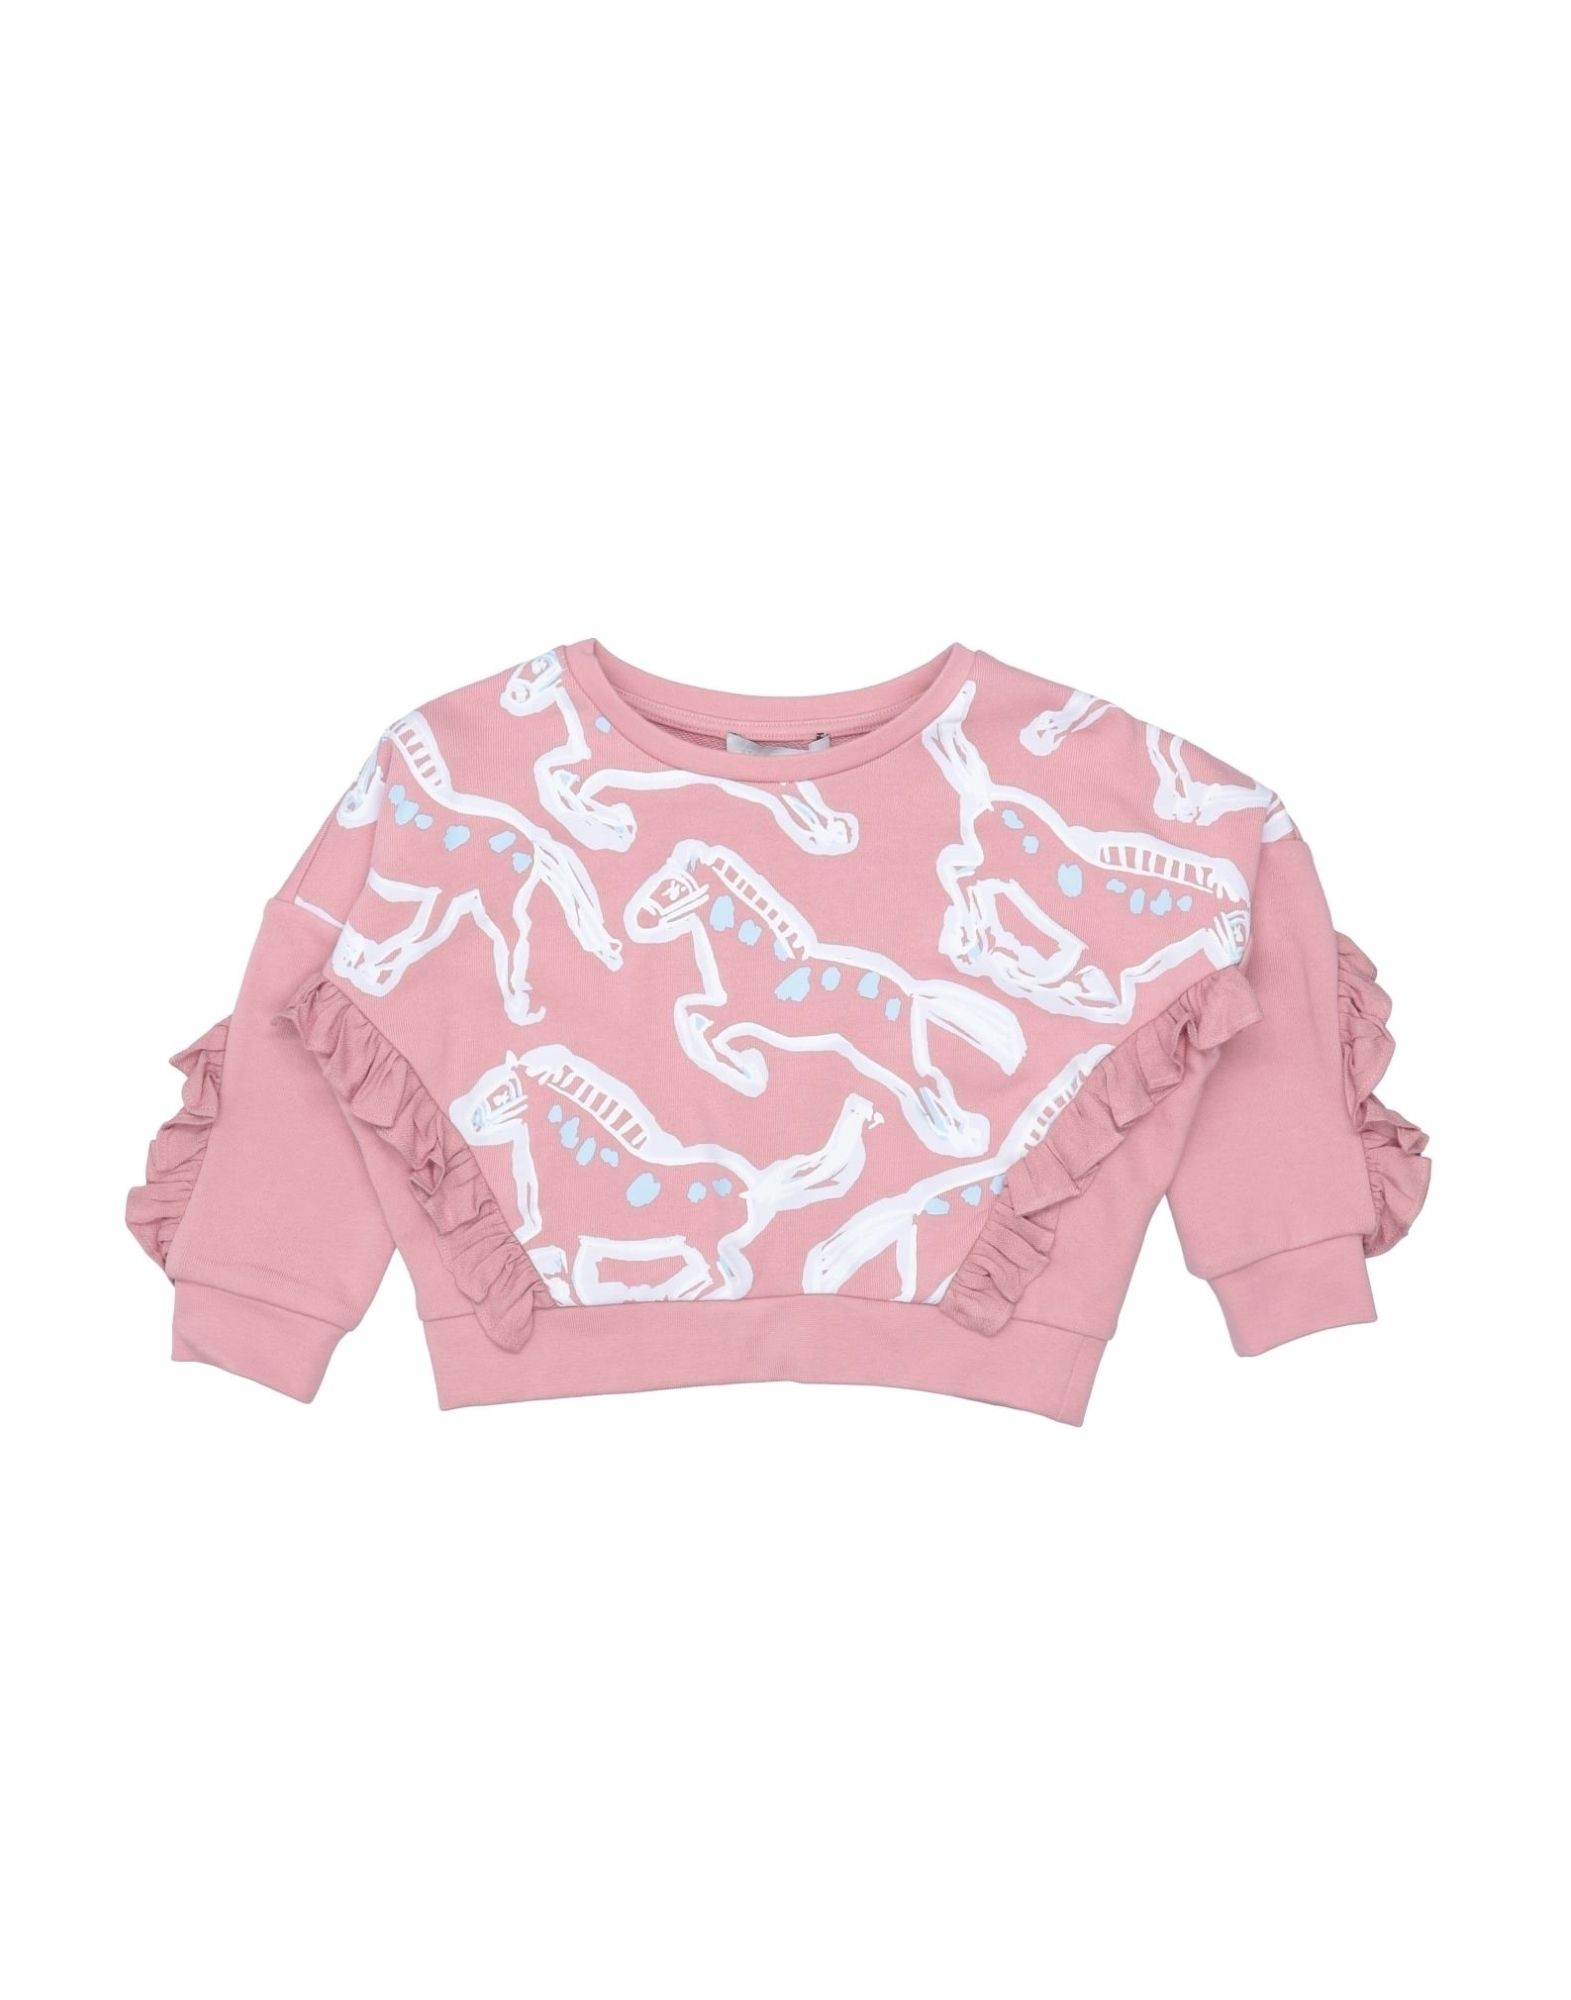 STELLA McCARTNEY KIDS Sweatshirts. sweatshirt fleece, plain weave, print, ruffles, multicolor pattern, round collar, long sleeves, no pockets, french terry lining, wash at 30degree c, dry cleanable, iron at 110degree c max, do not bleach, do not tumble dry. 100% Cotton, Viscose, Elastane